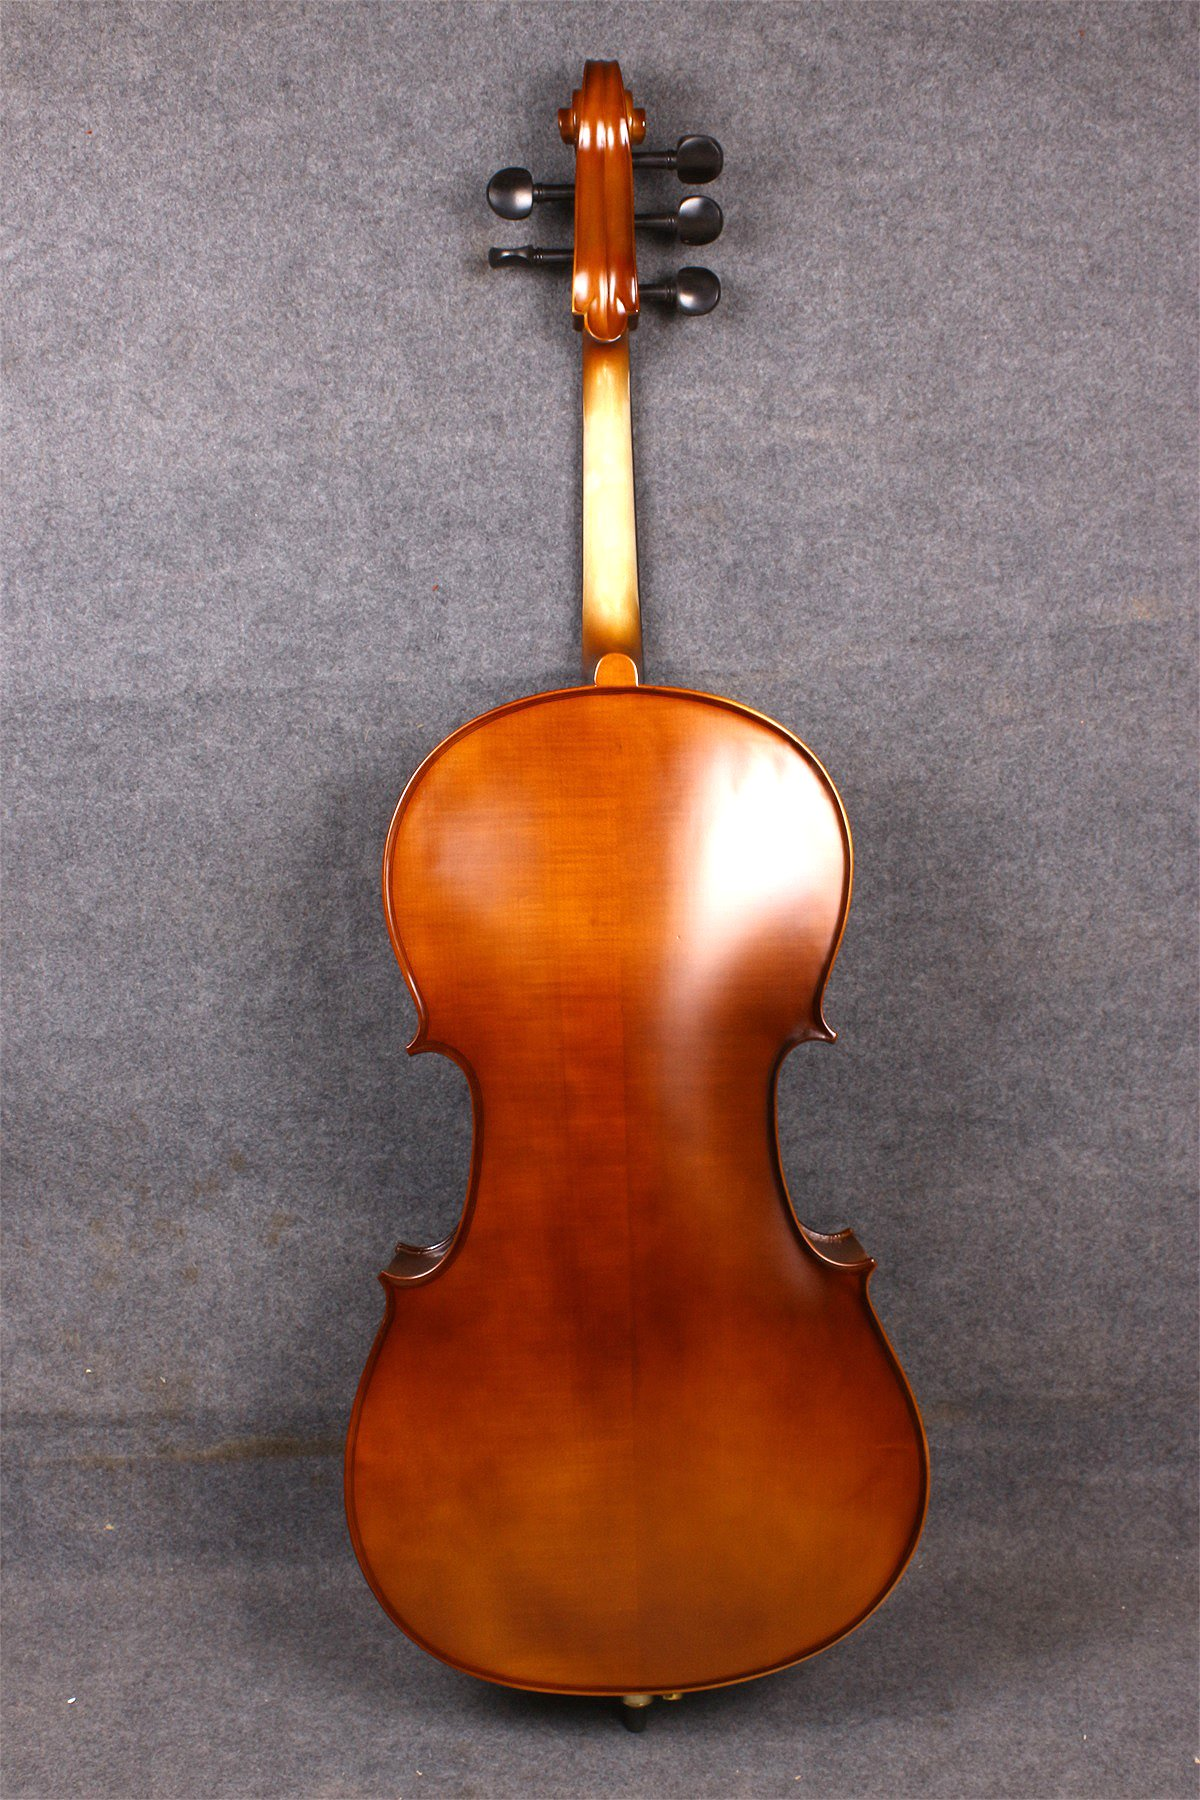 Yinfente 4/4 5 String Cello Acoustic Model Full size Spruce Maple wood Free Cello bow Bag Sweet Sound by yinfente (Image #3)